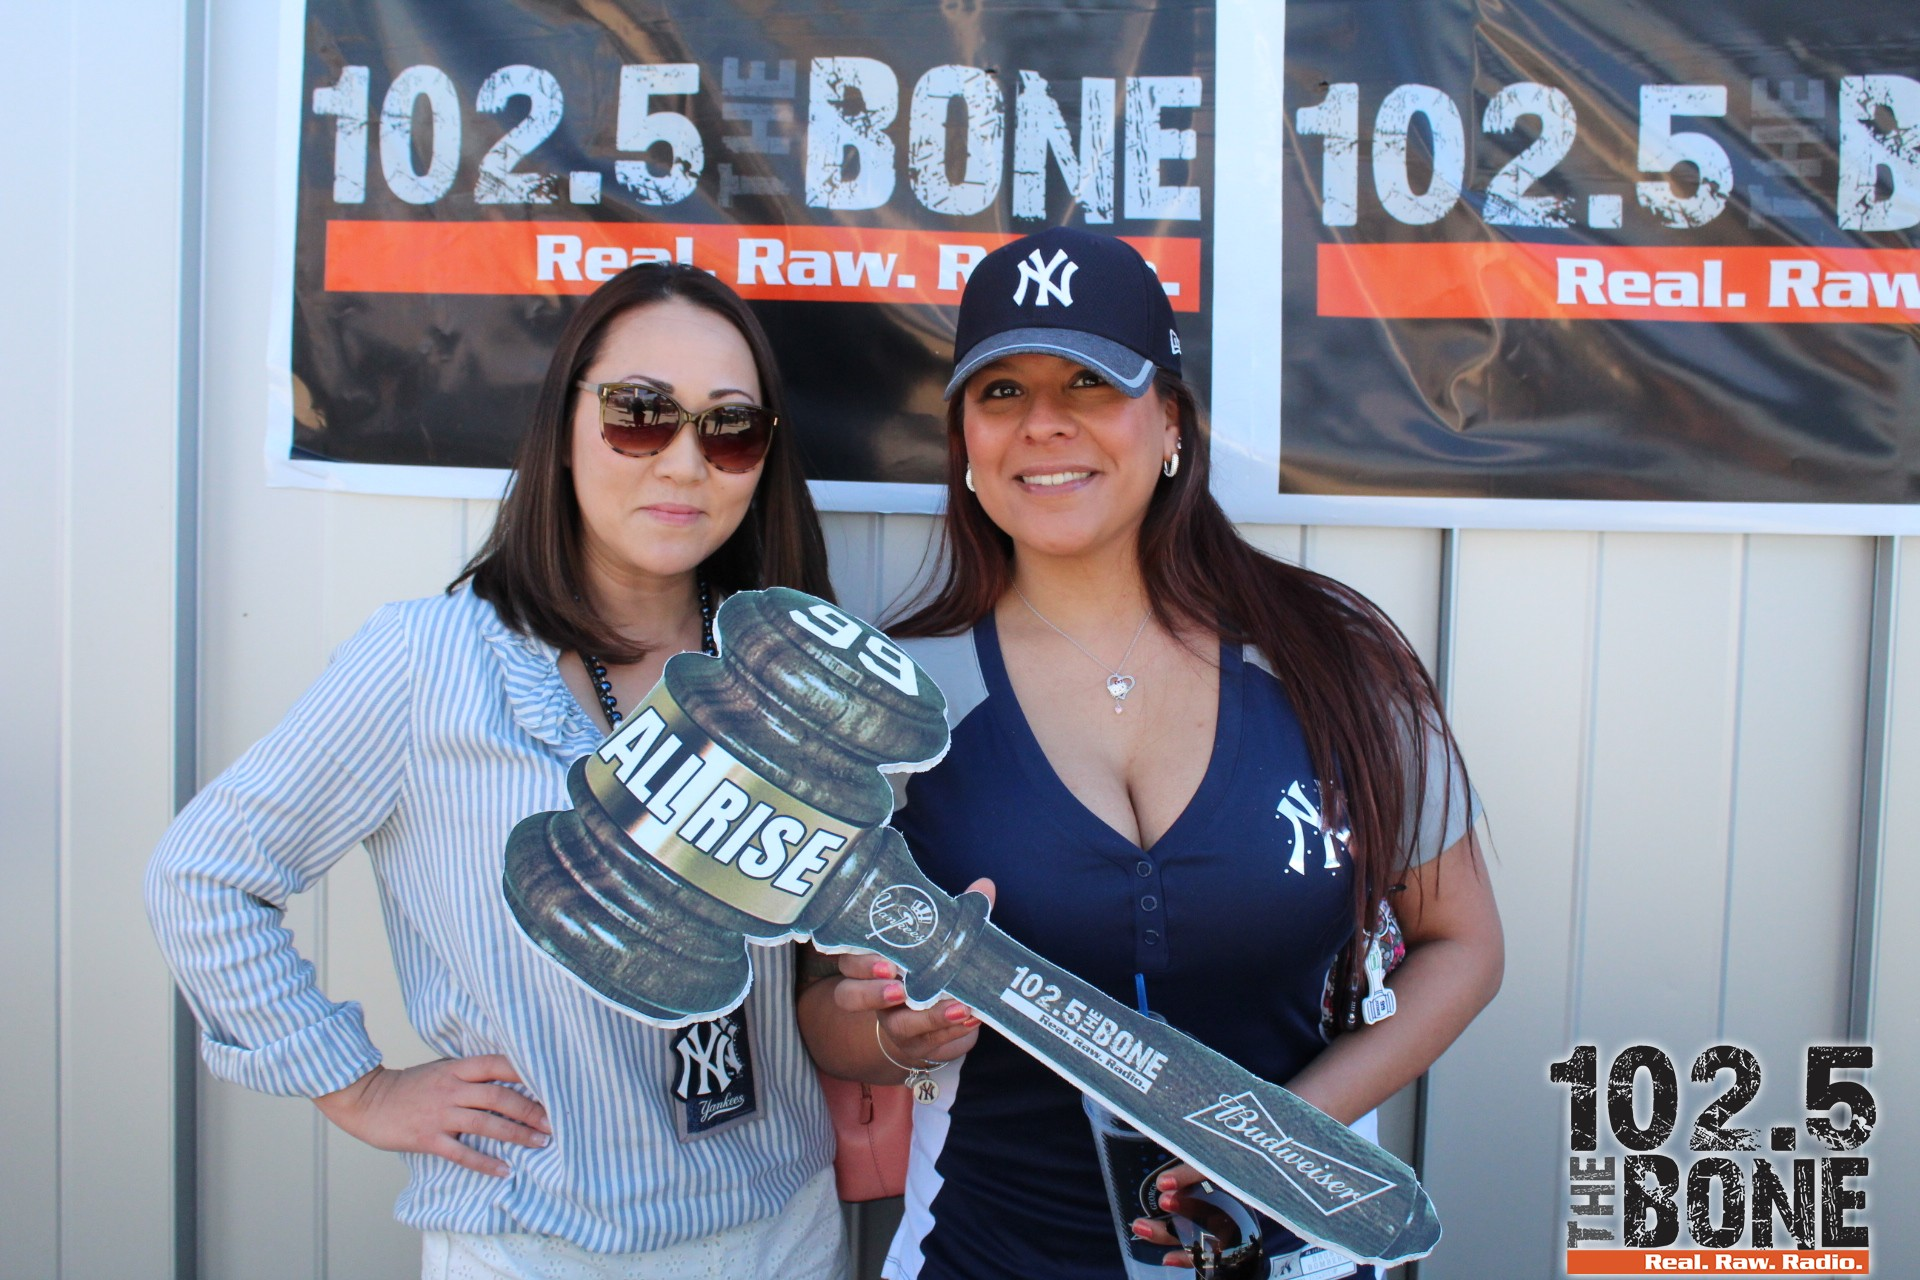 Yankees Spring Training Post Game Party Presented By Budweiser 3 15 18 102 5 The Bone